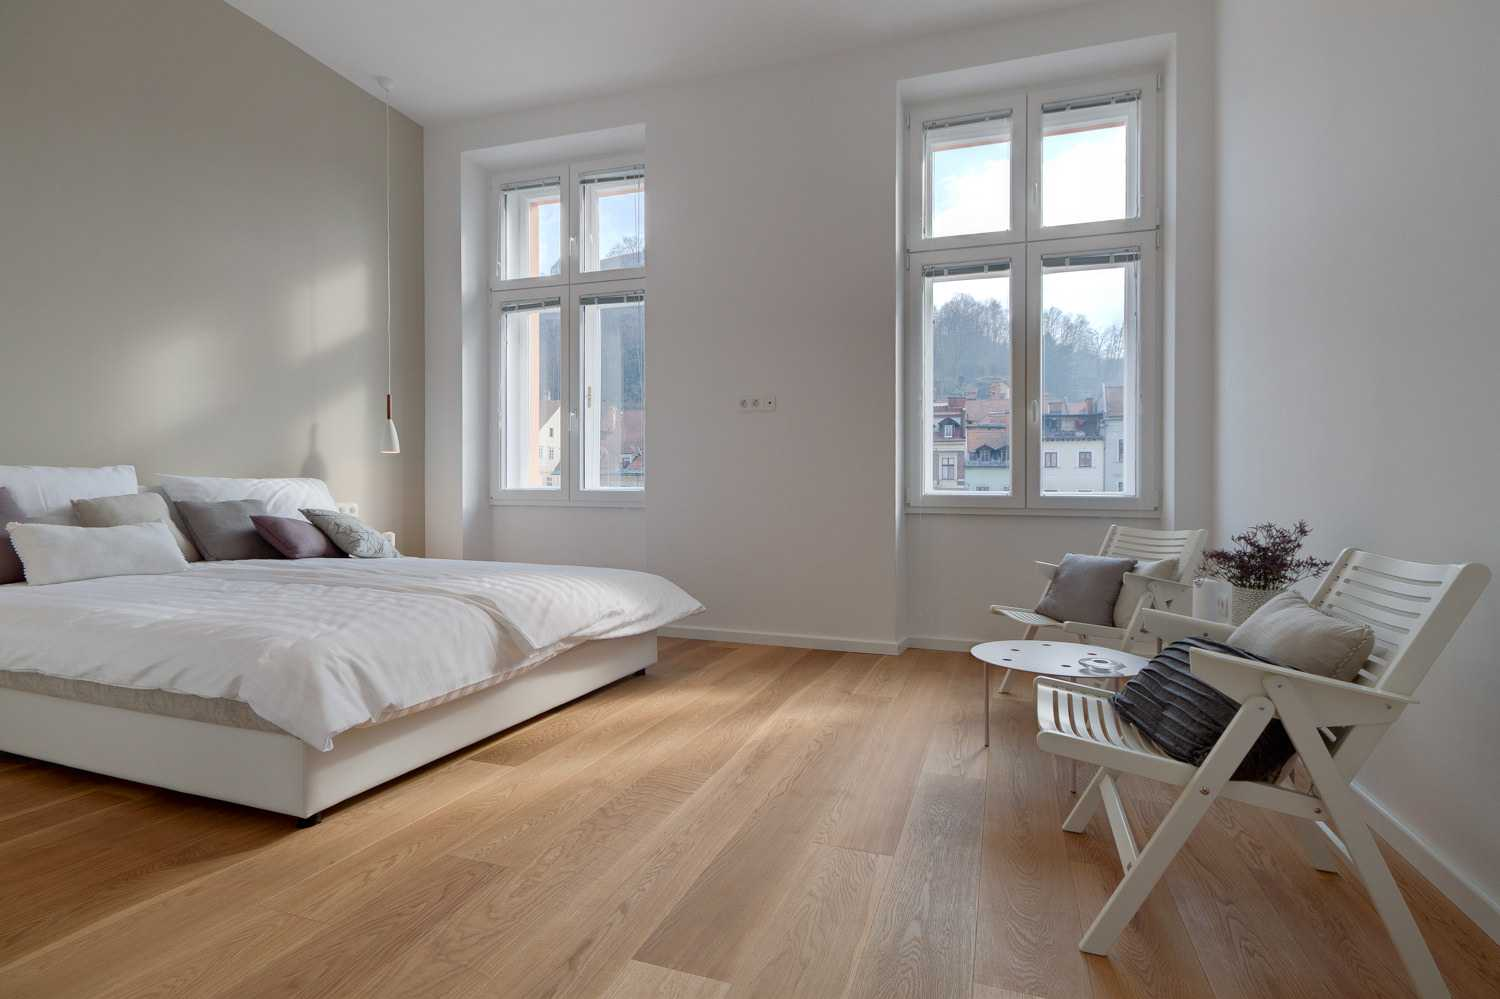 The master bedroom has fantastic views of the old town.